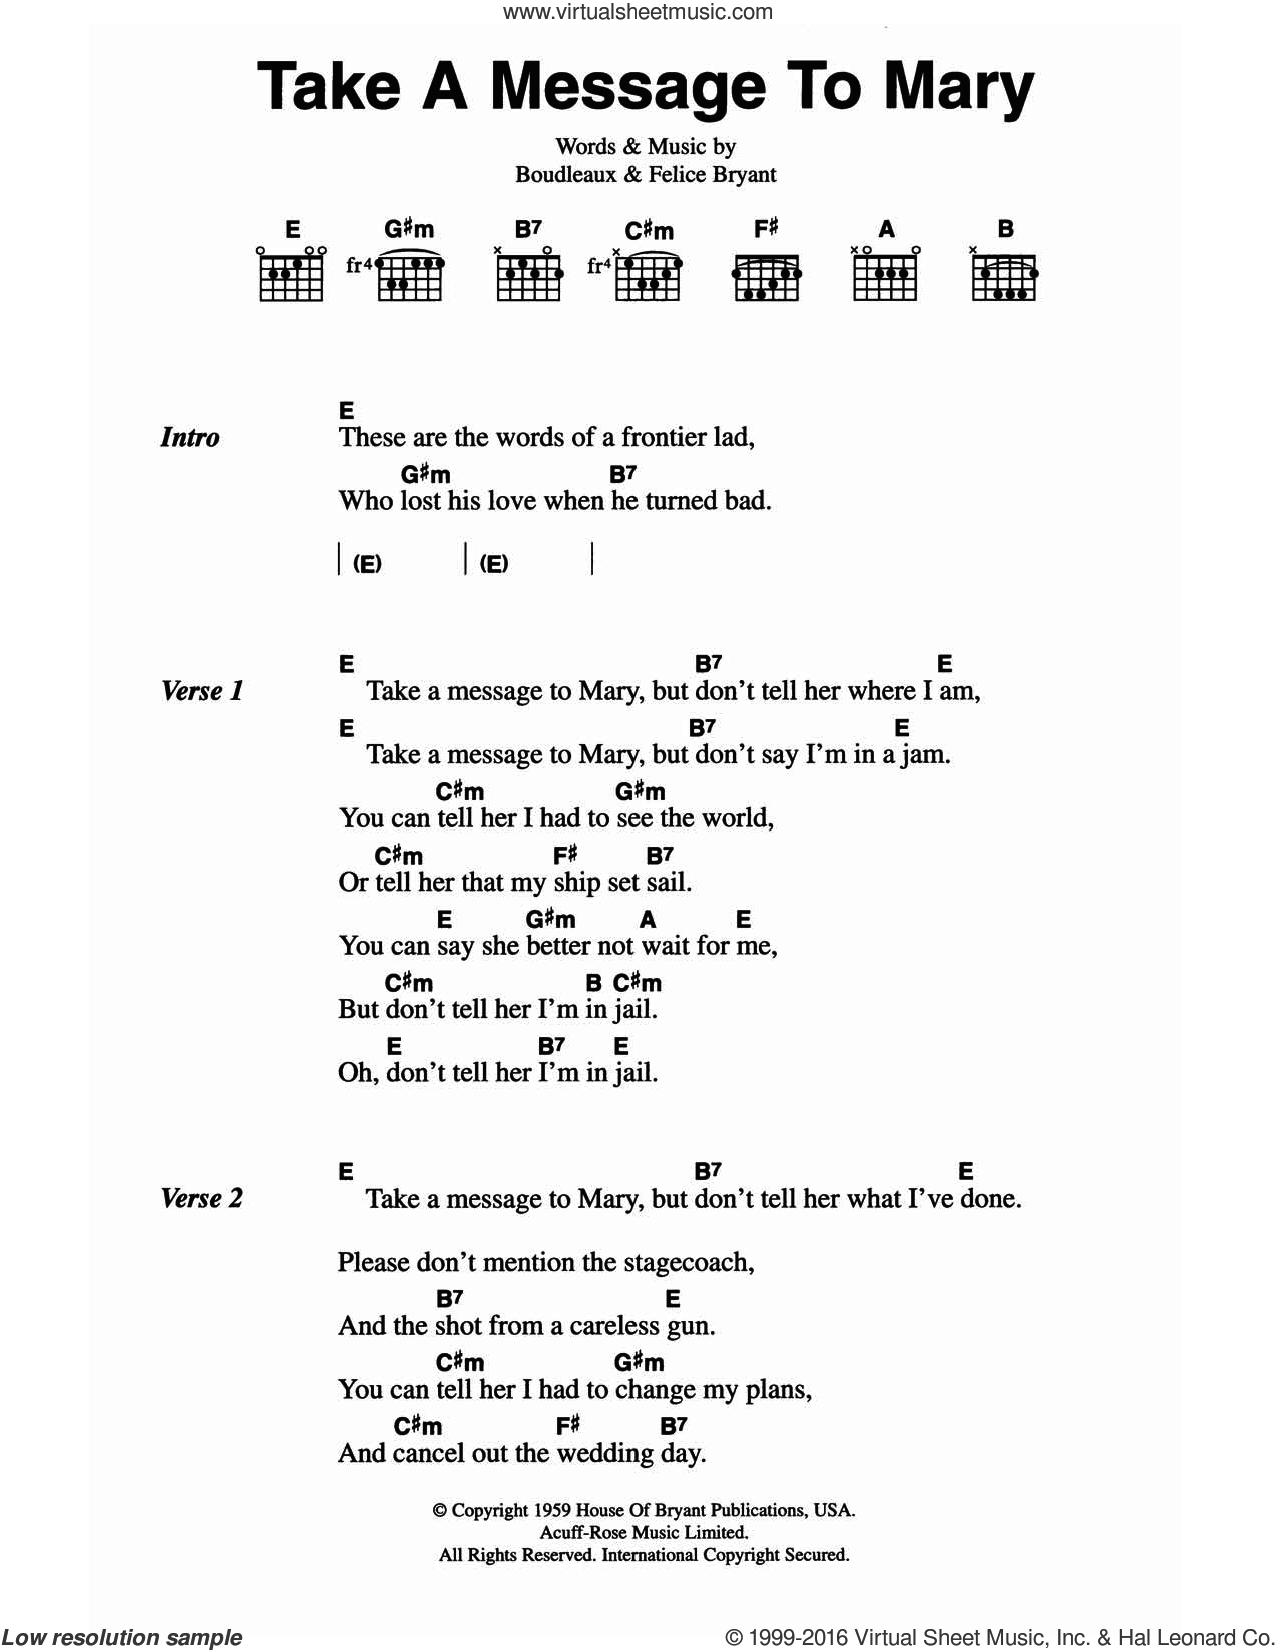 Take A Message To Mary sheet music for guitar (chords) by The Everly Brothers, Boudleaux Bryant and Felice Bryant, intermediate. Score Image Preview.